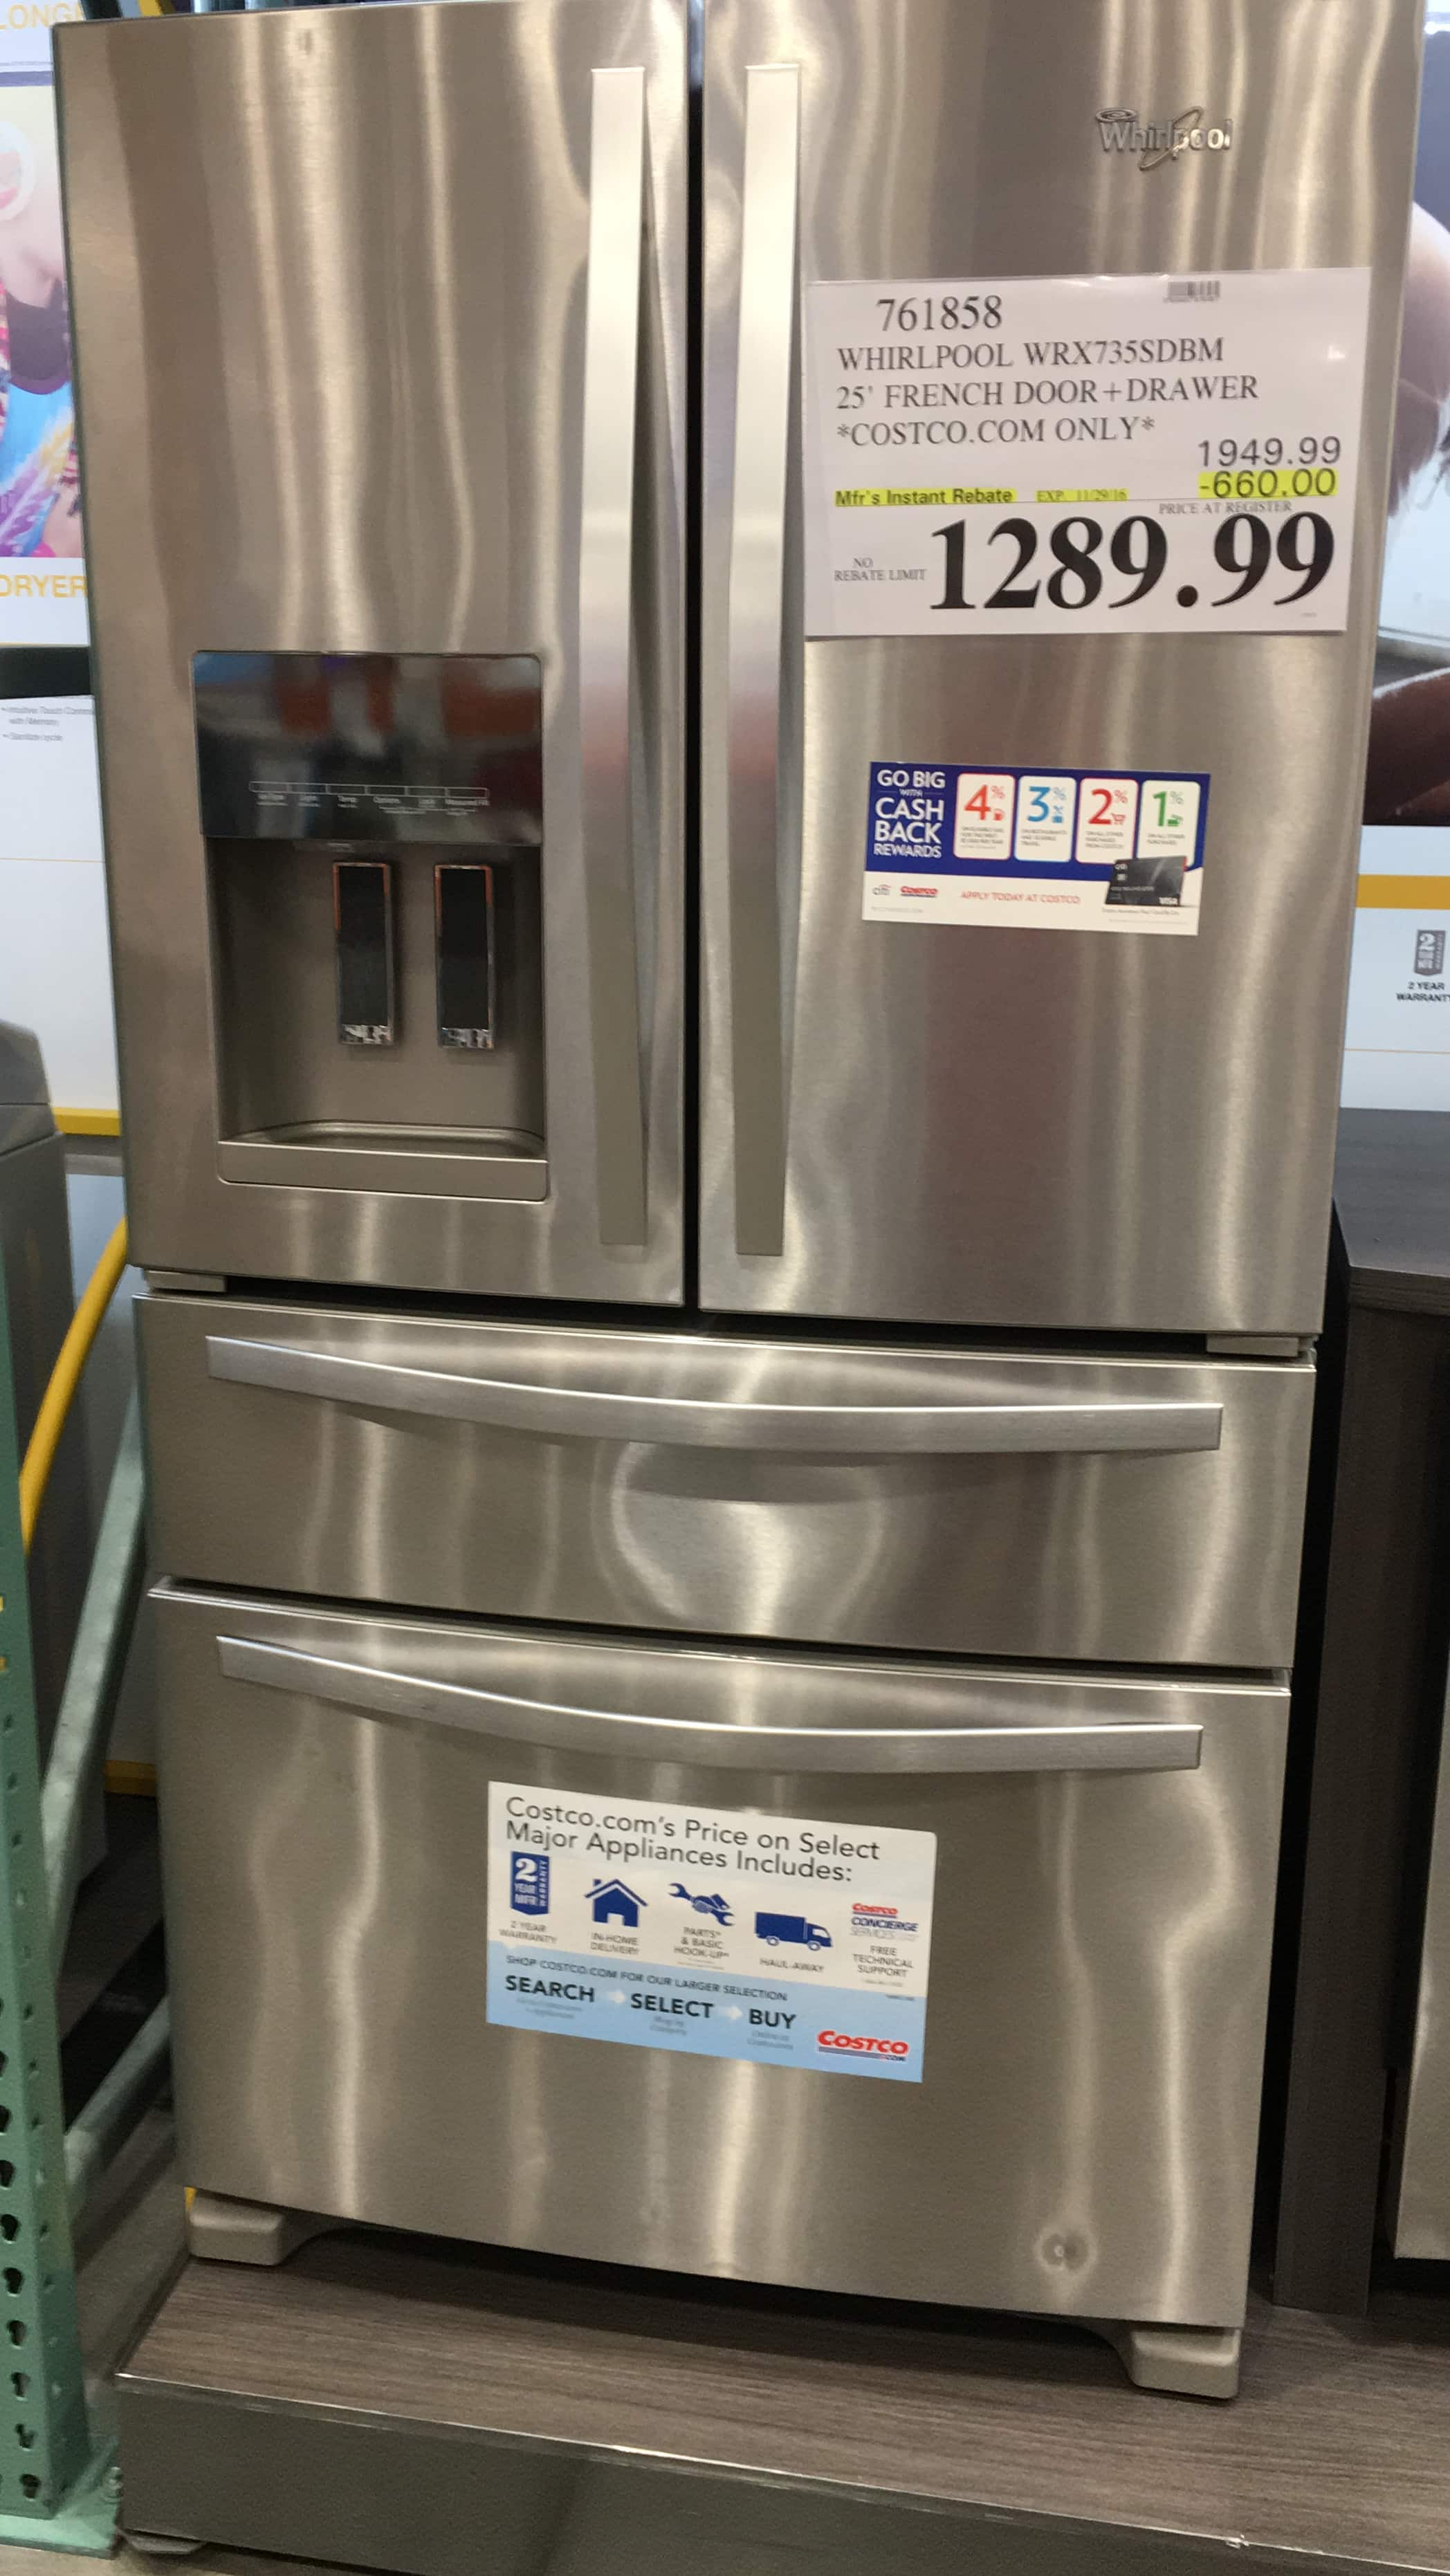 Costco has a Whirlpool 25CuFt French Door Stainless Steel